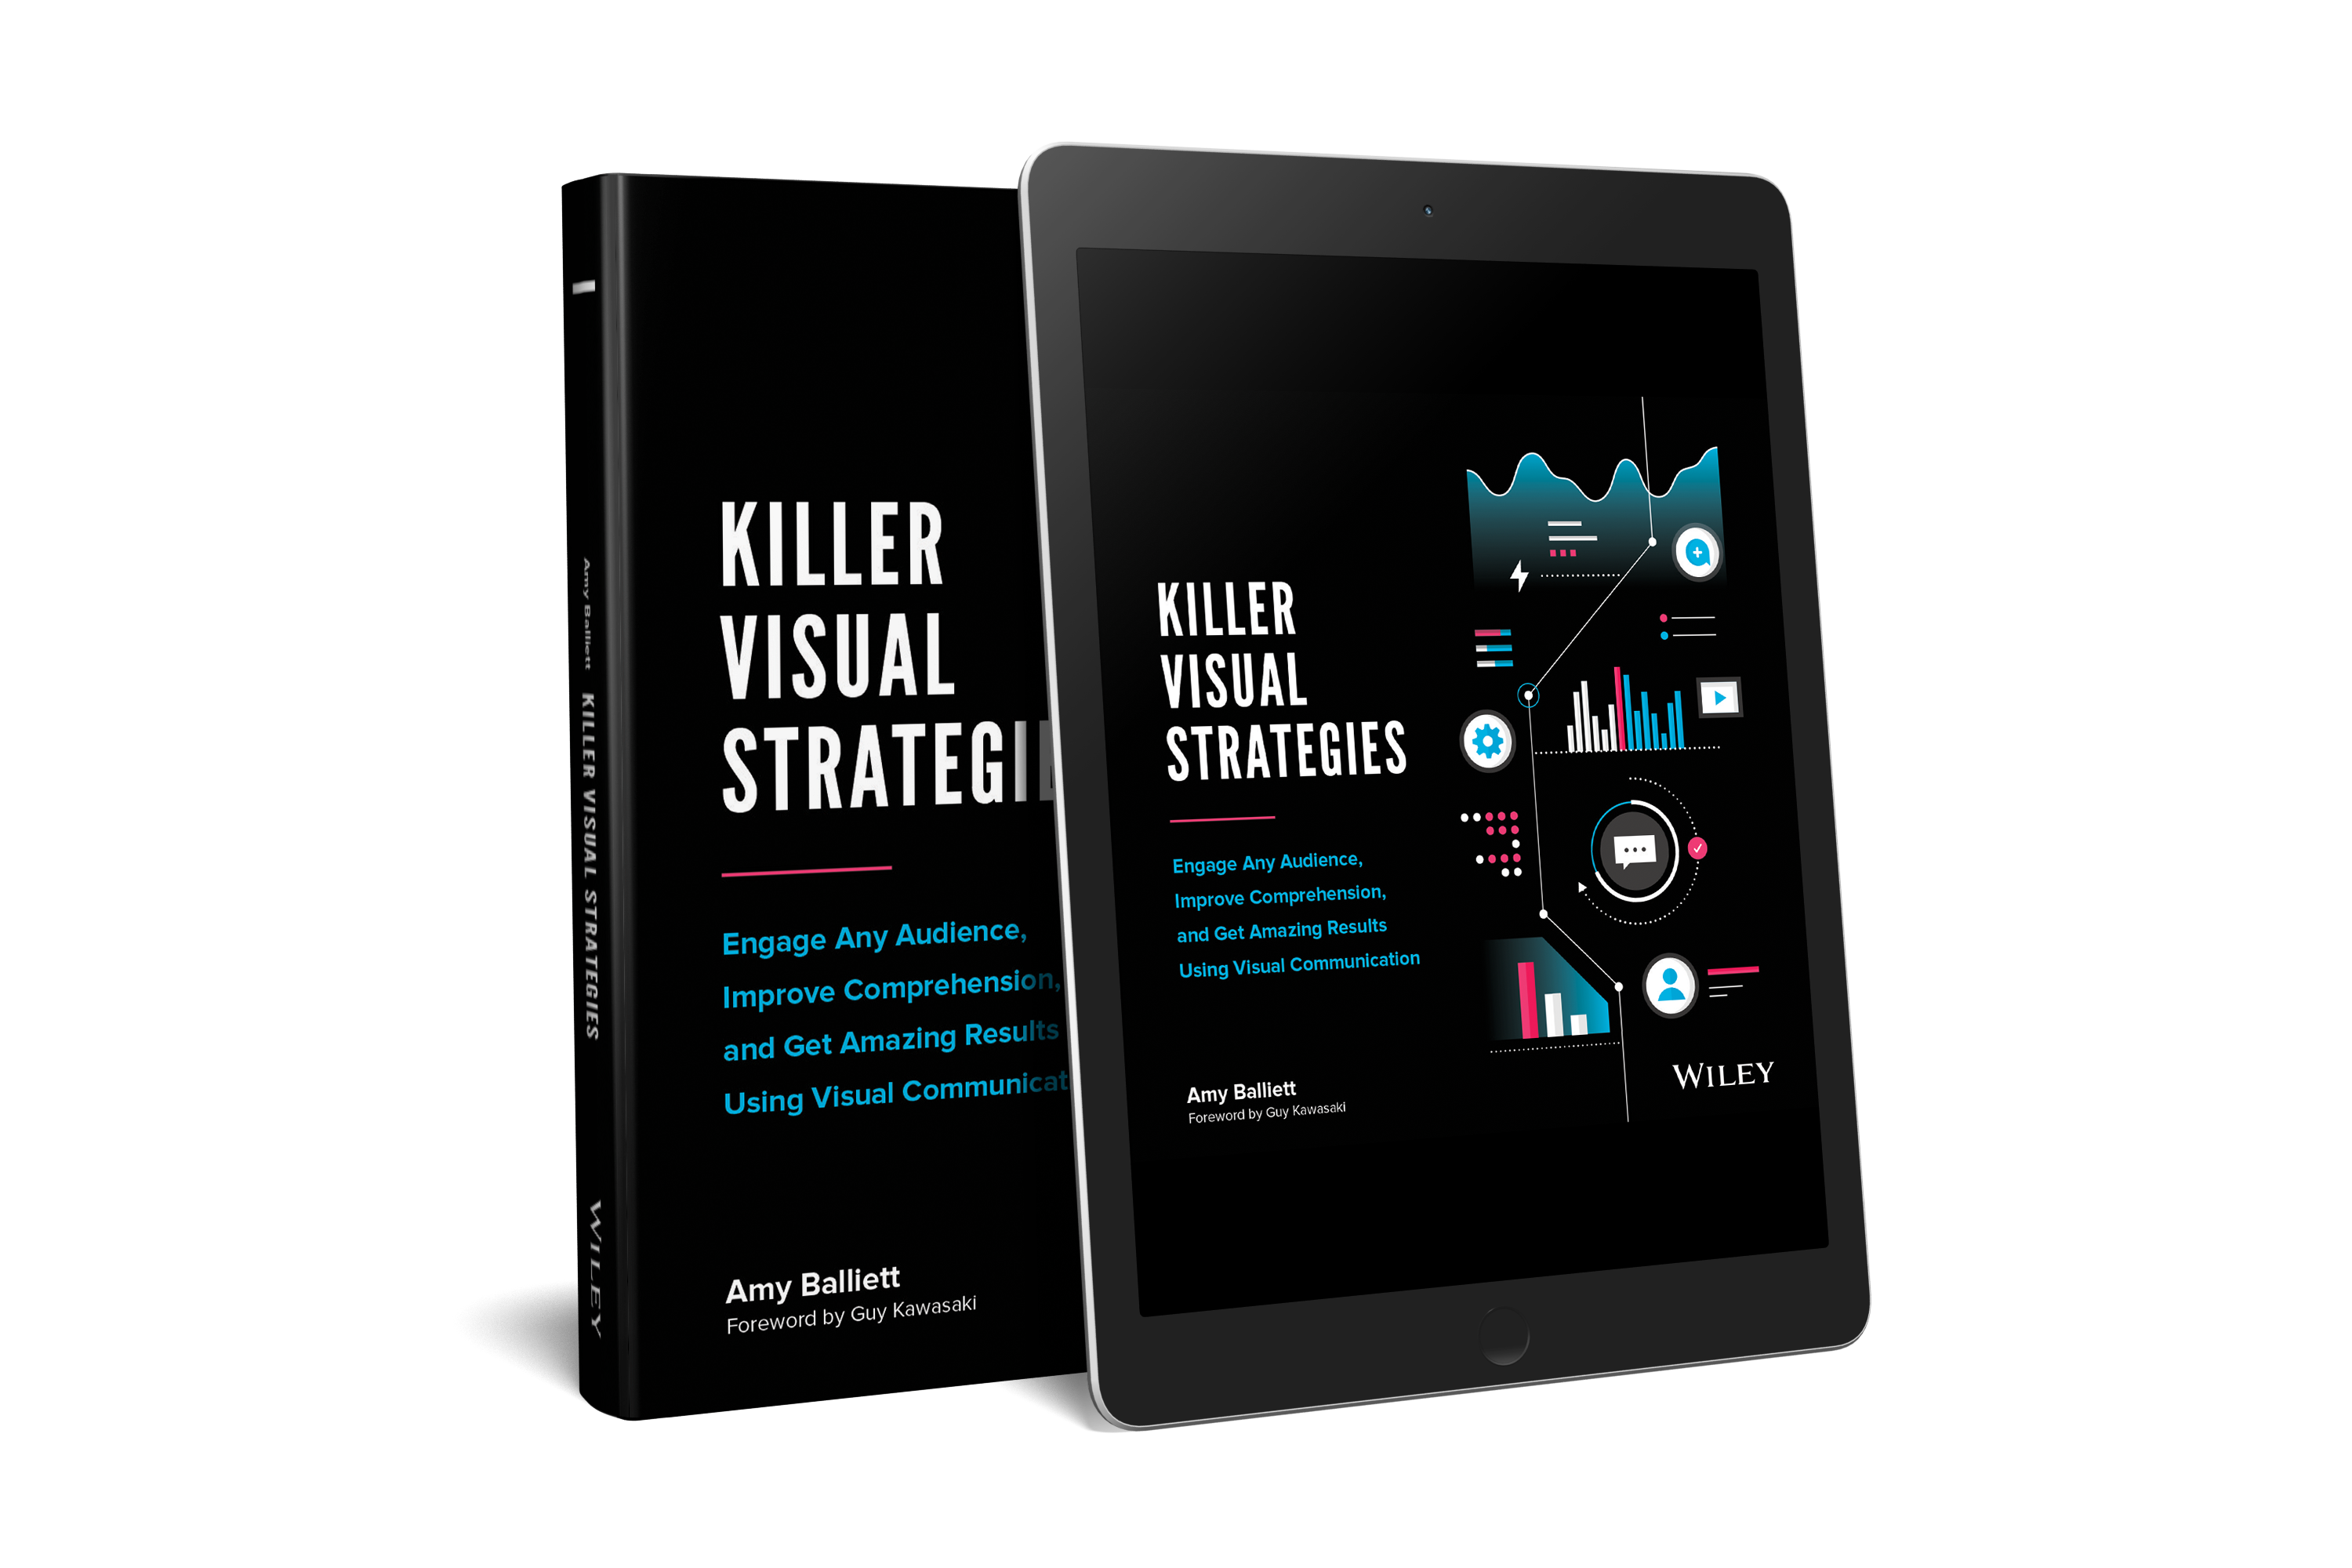 Print book and digital ebook on tablet with black background, title, and data visualization elements